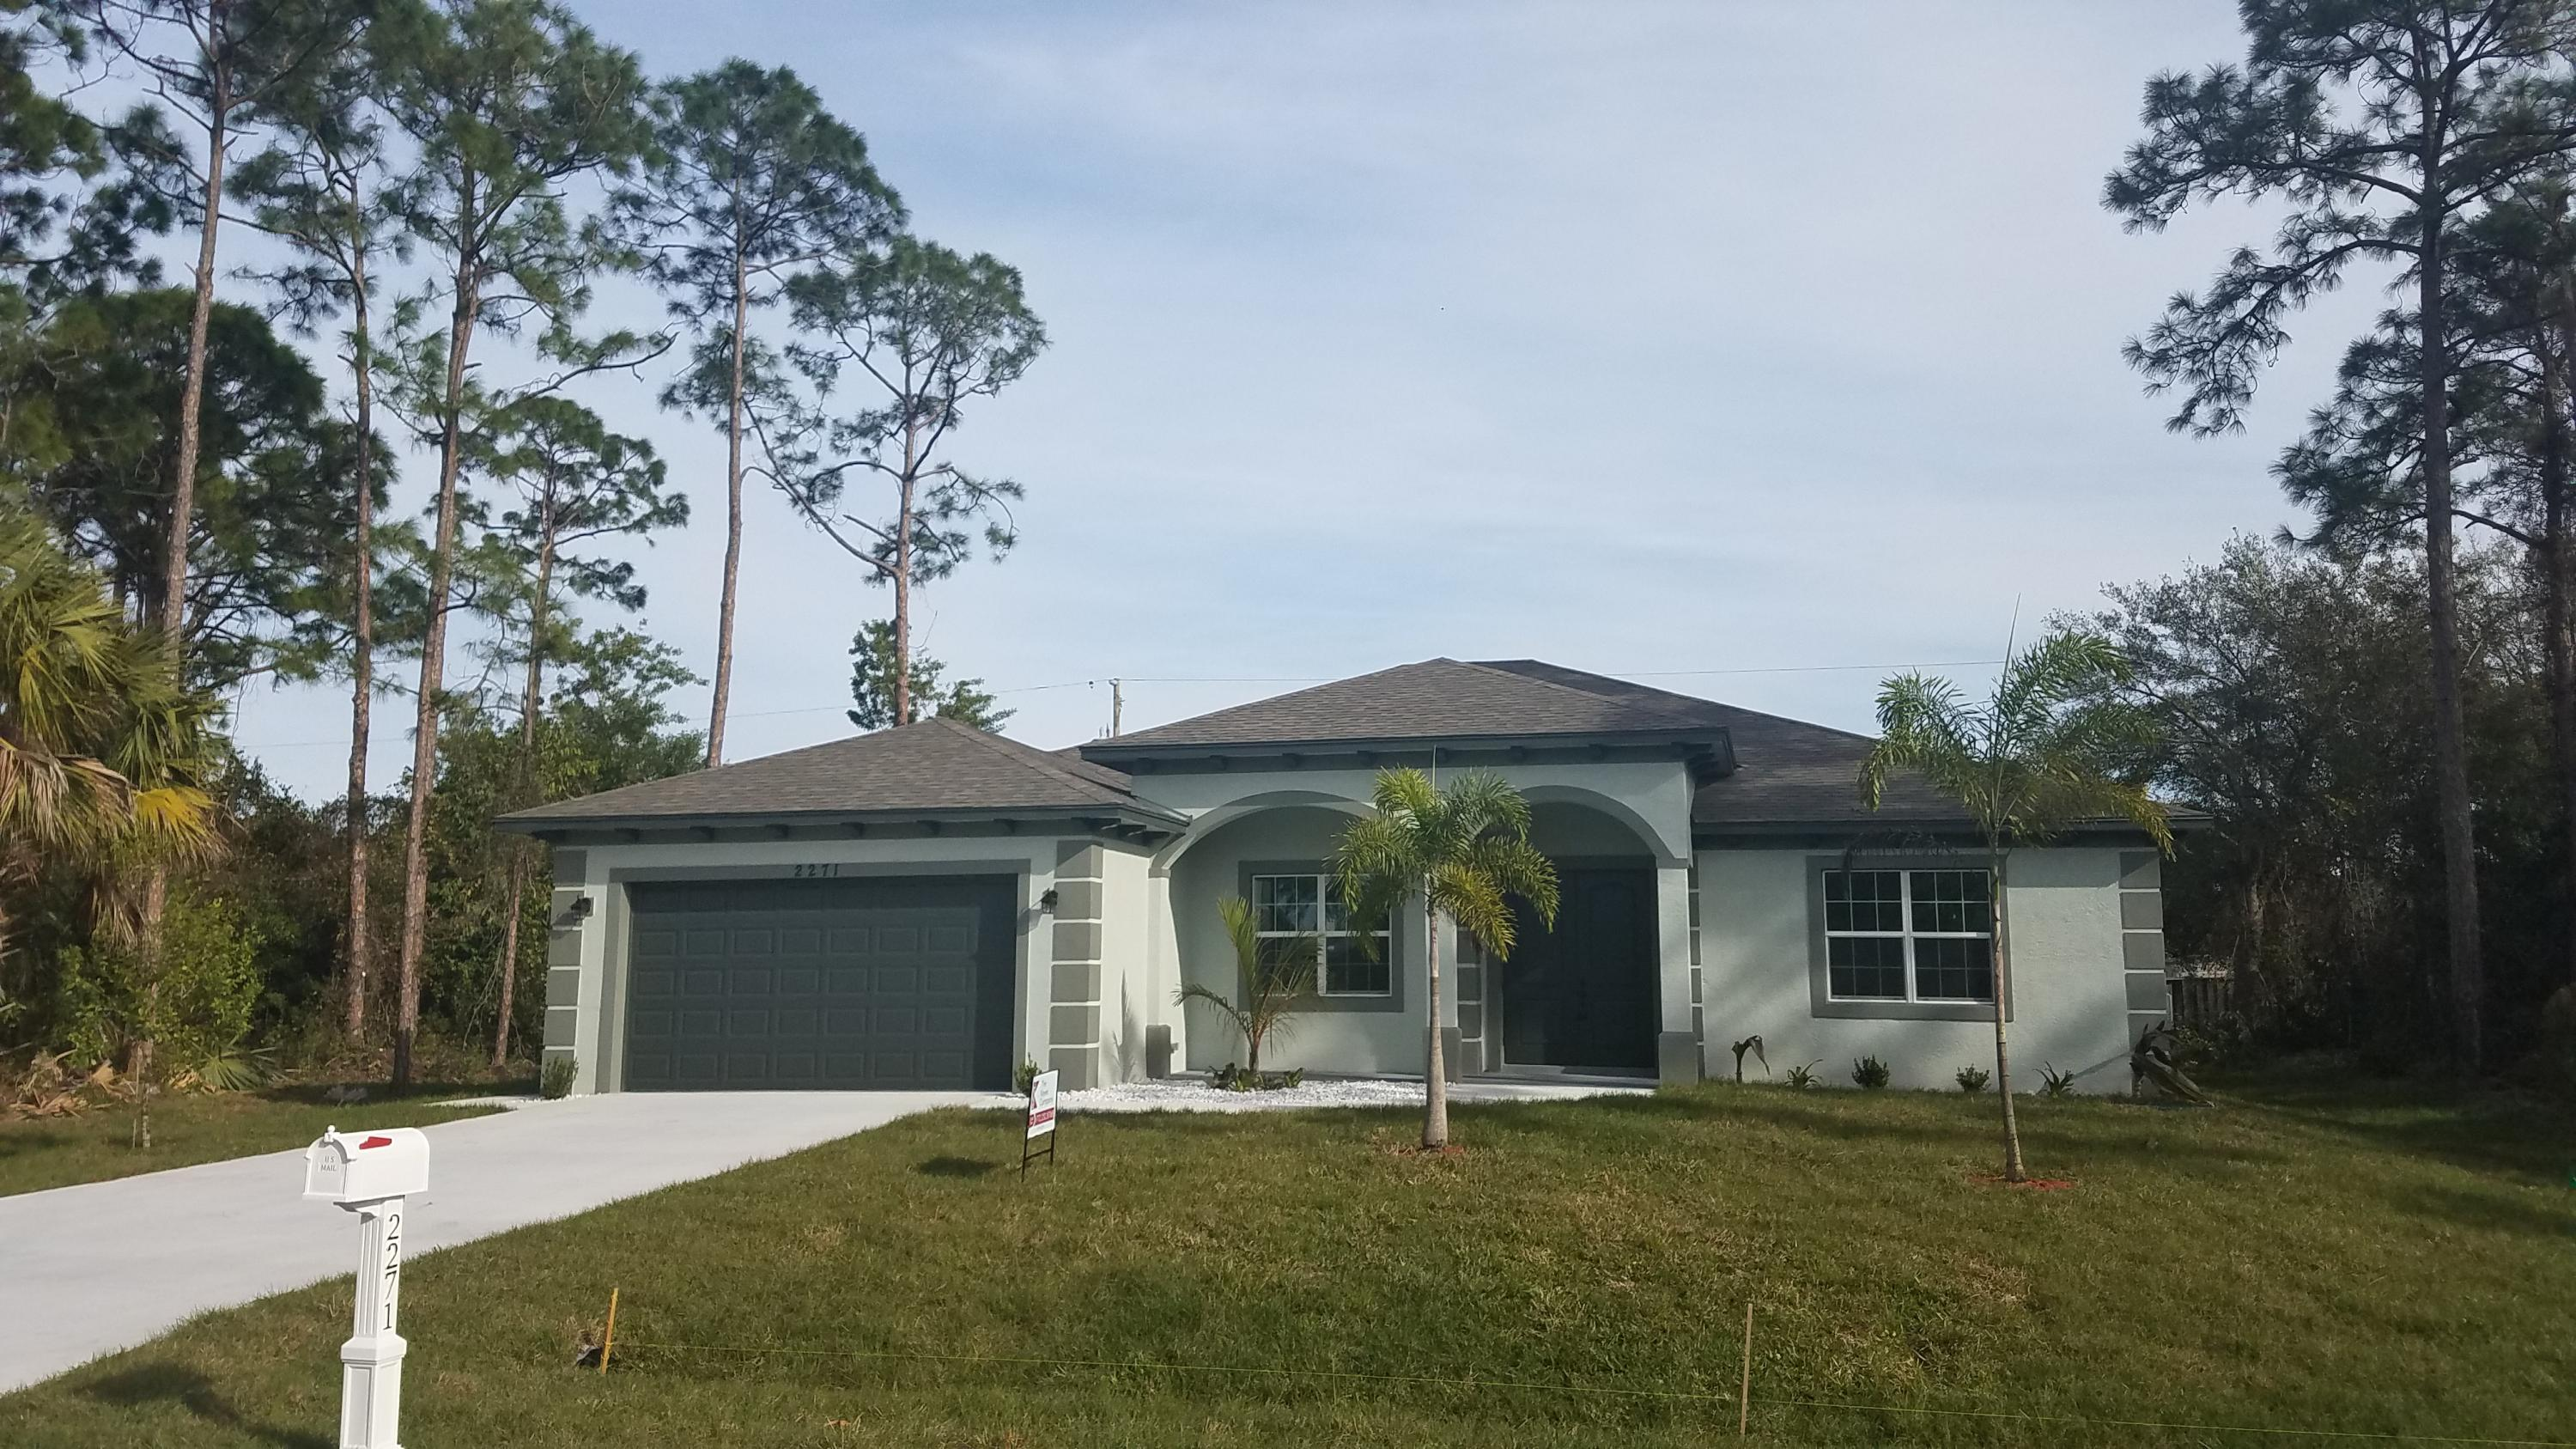 PORT ST LUCIE SECTION 12 HOMES